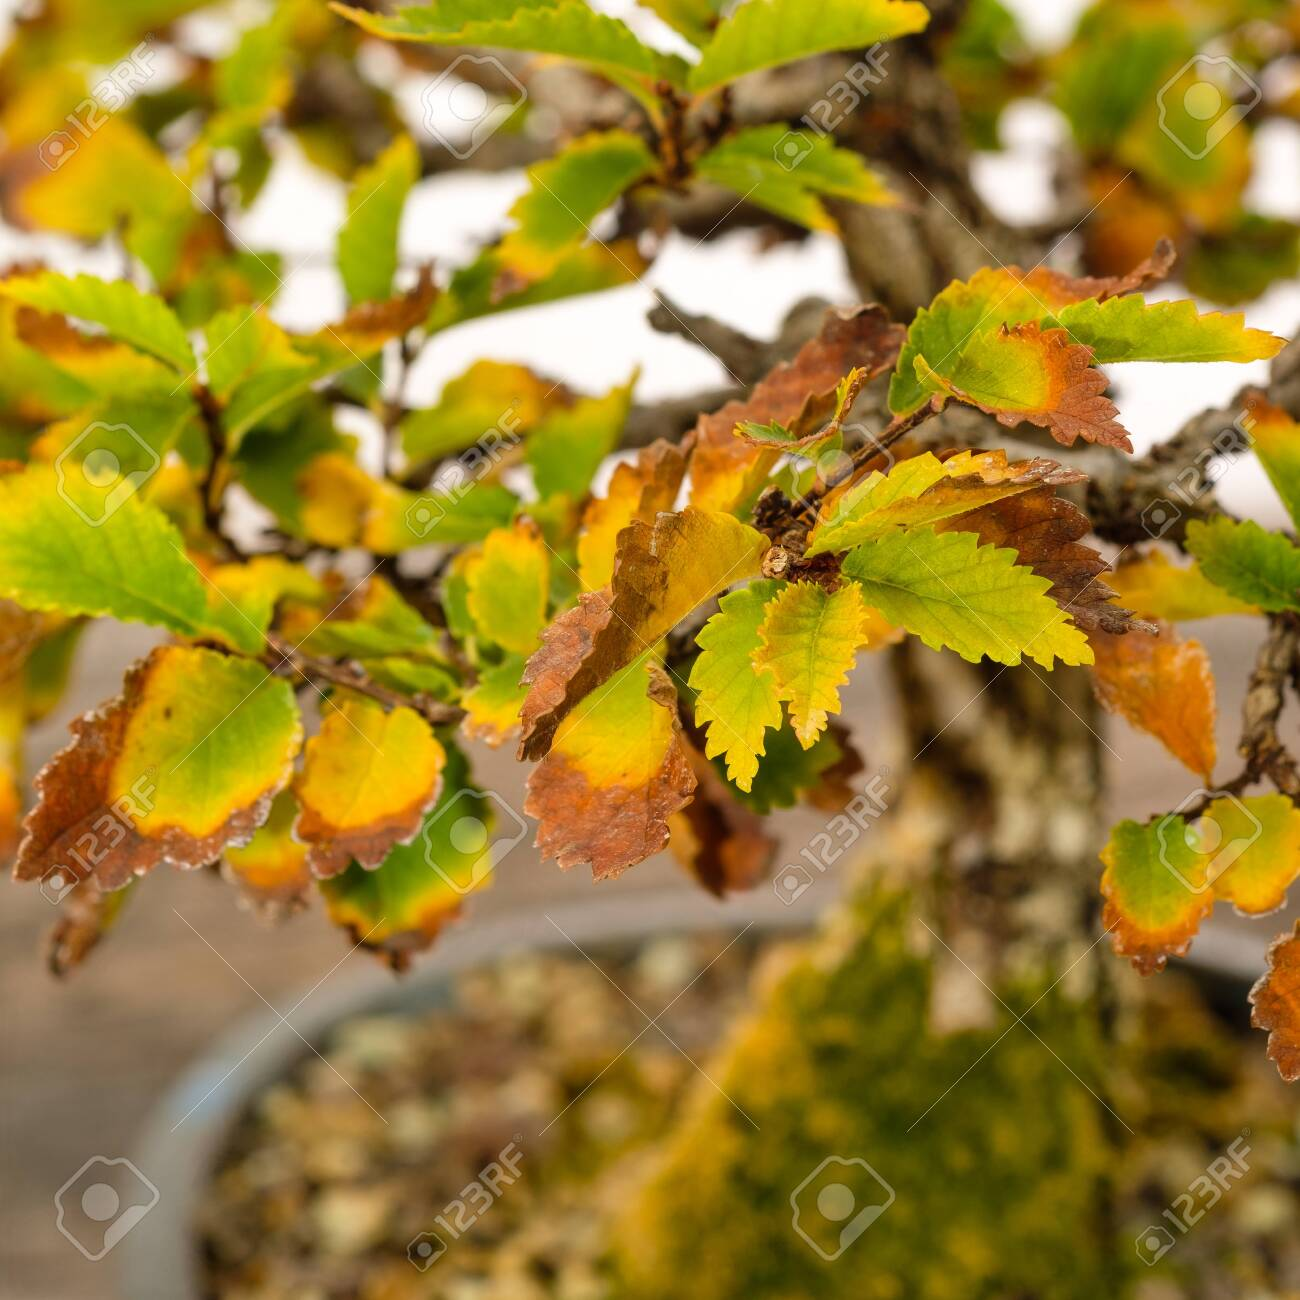 Foliage Leaves Elm Bonsai Tree Autumn Colouring With Blurred Stock Photo Picture And Royalty Free Image Image 143499135